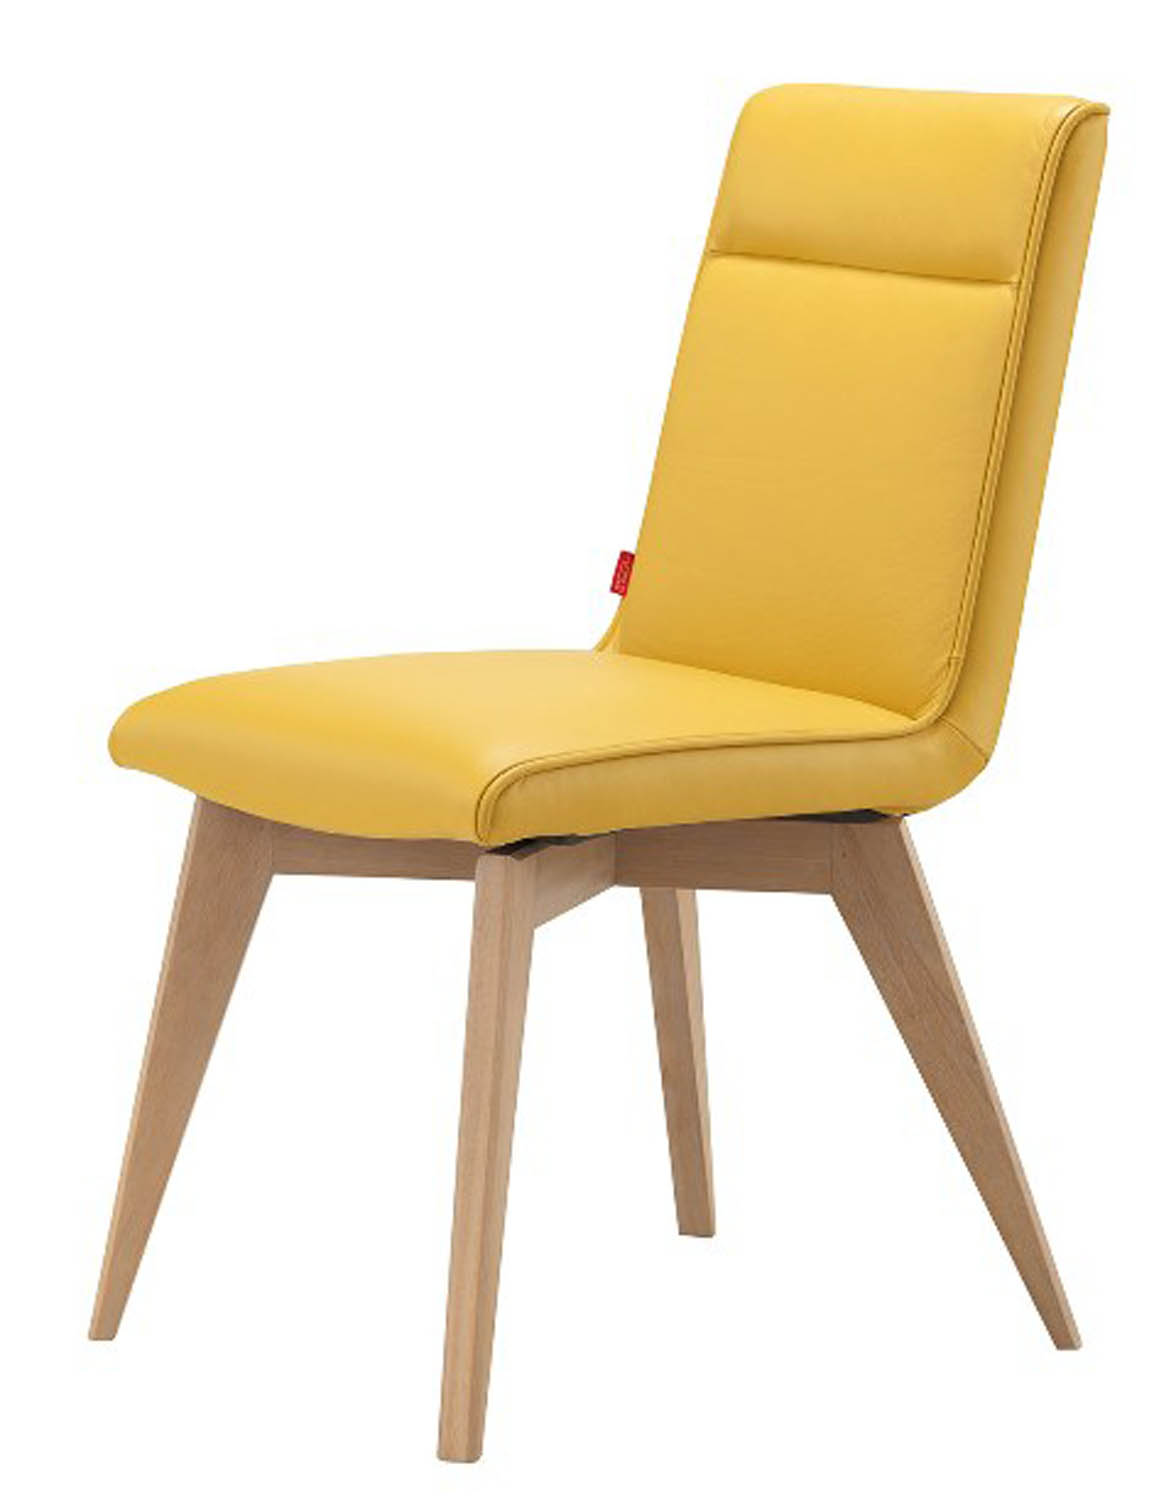 Jasper chair new furniture by design for Chair new design